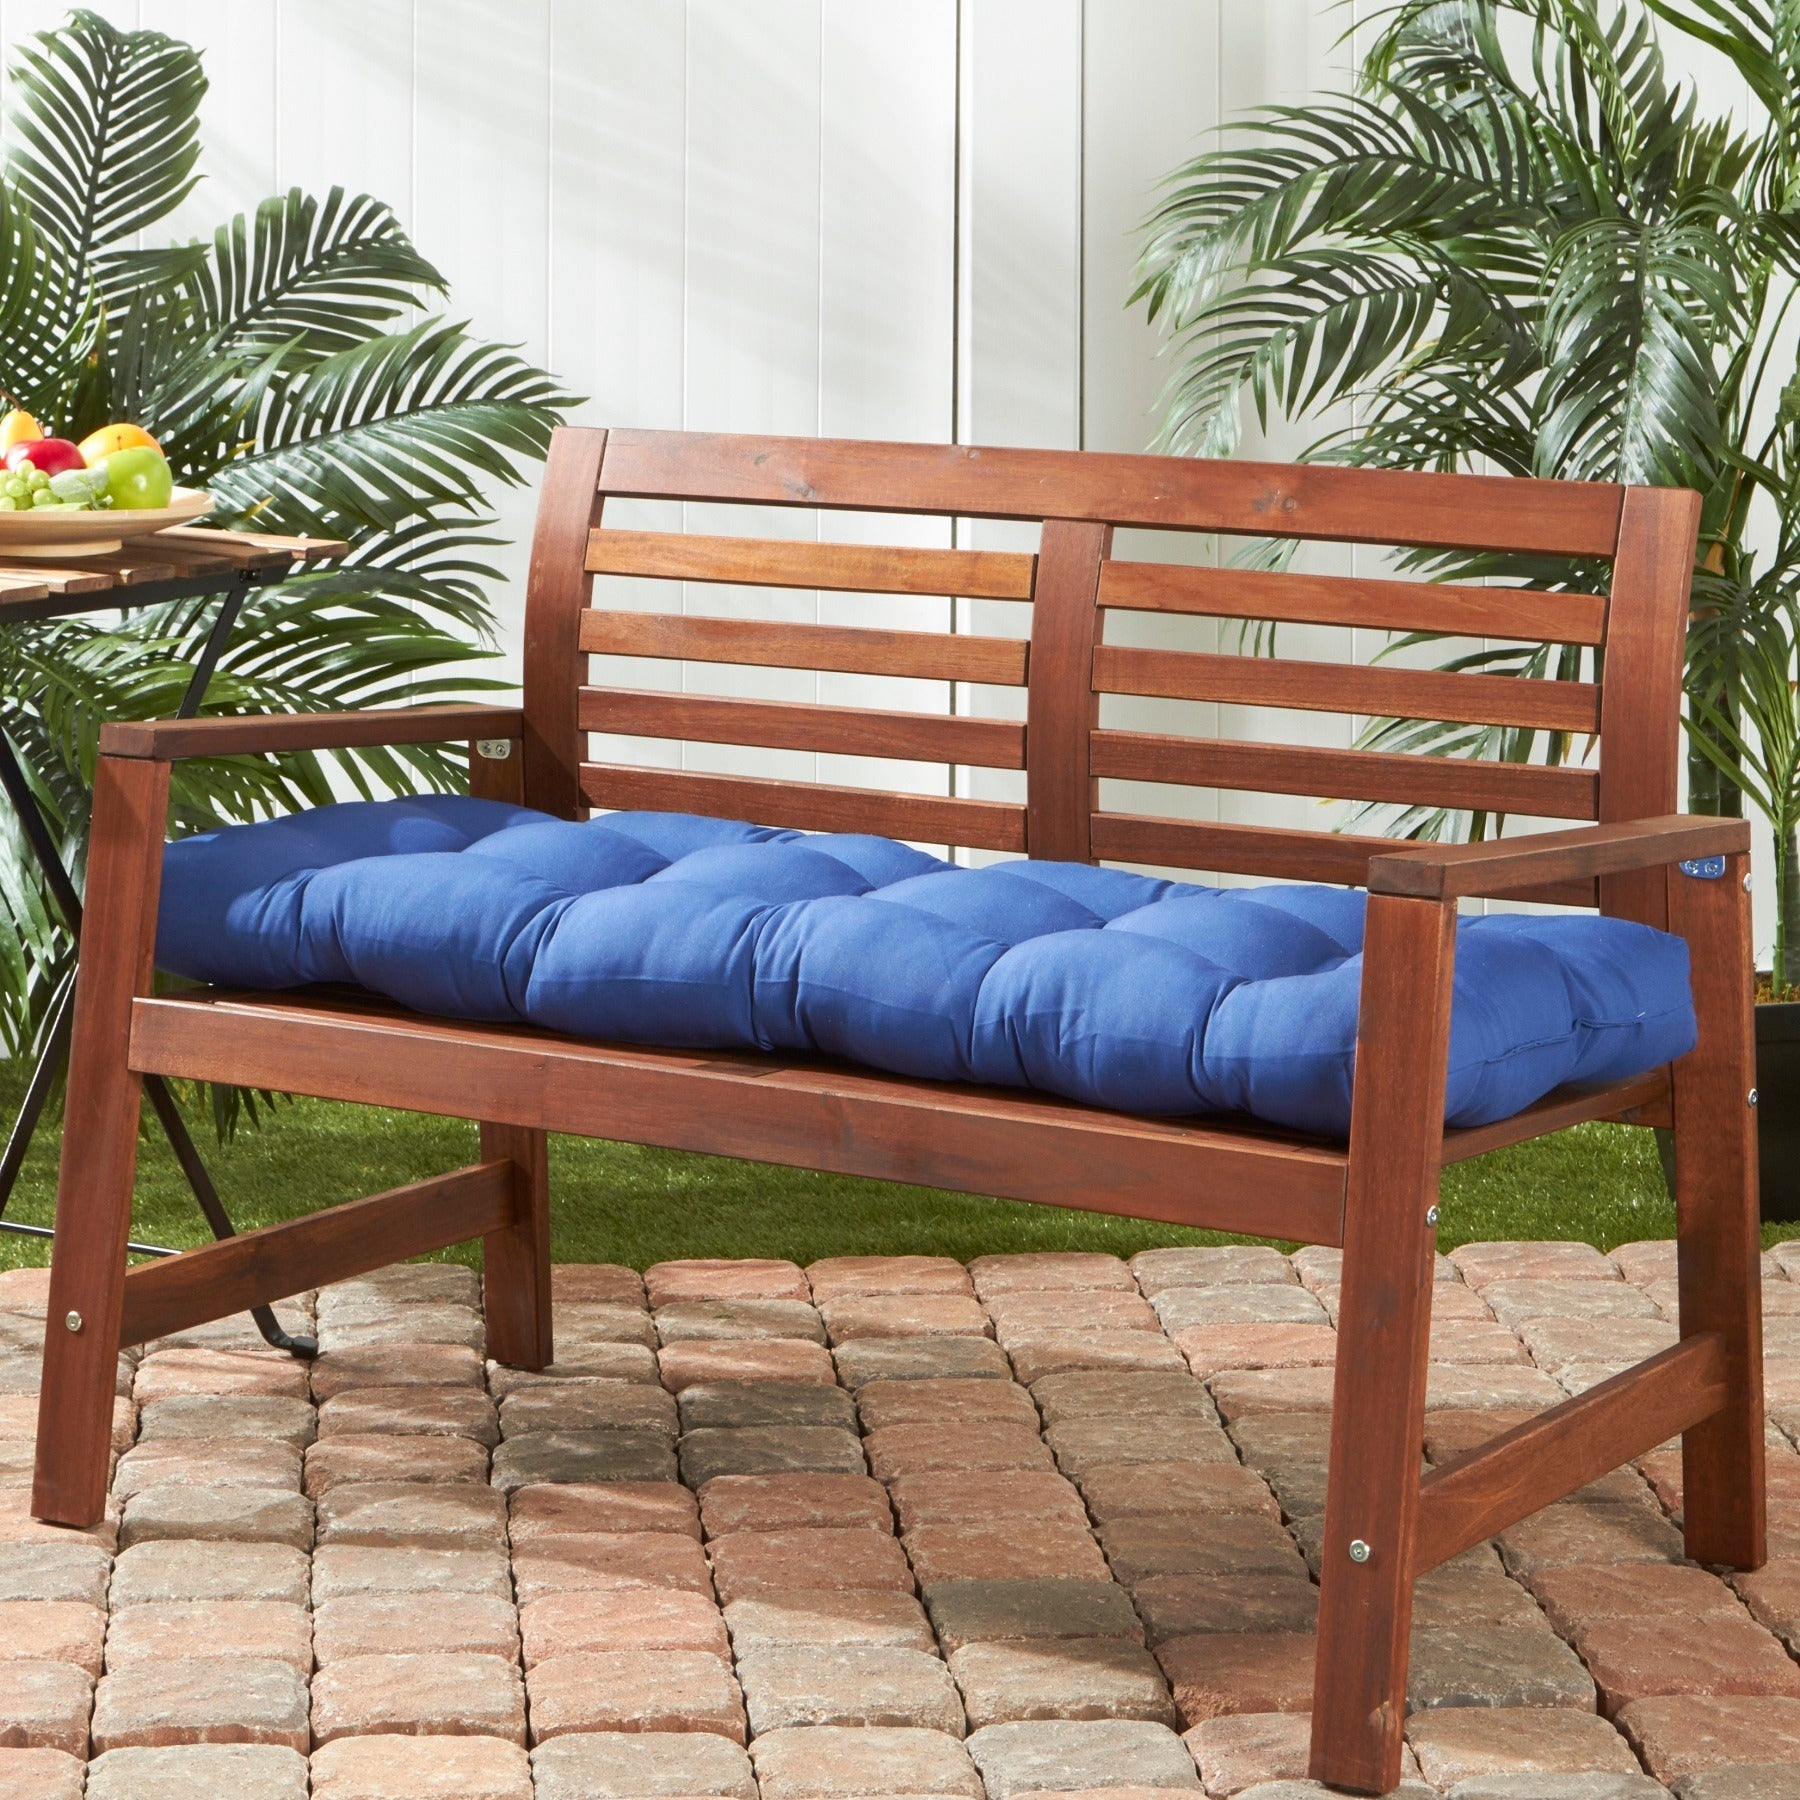 Shop Greendale Home Fashions Outdoor Marine Blue Bench